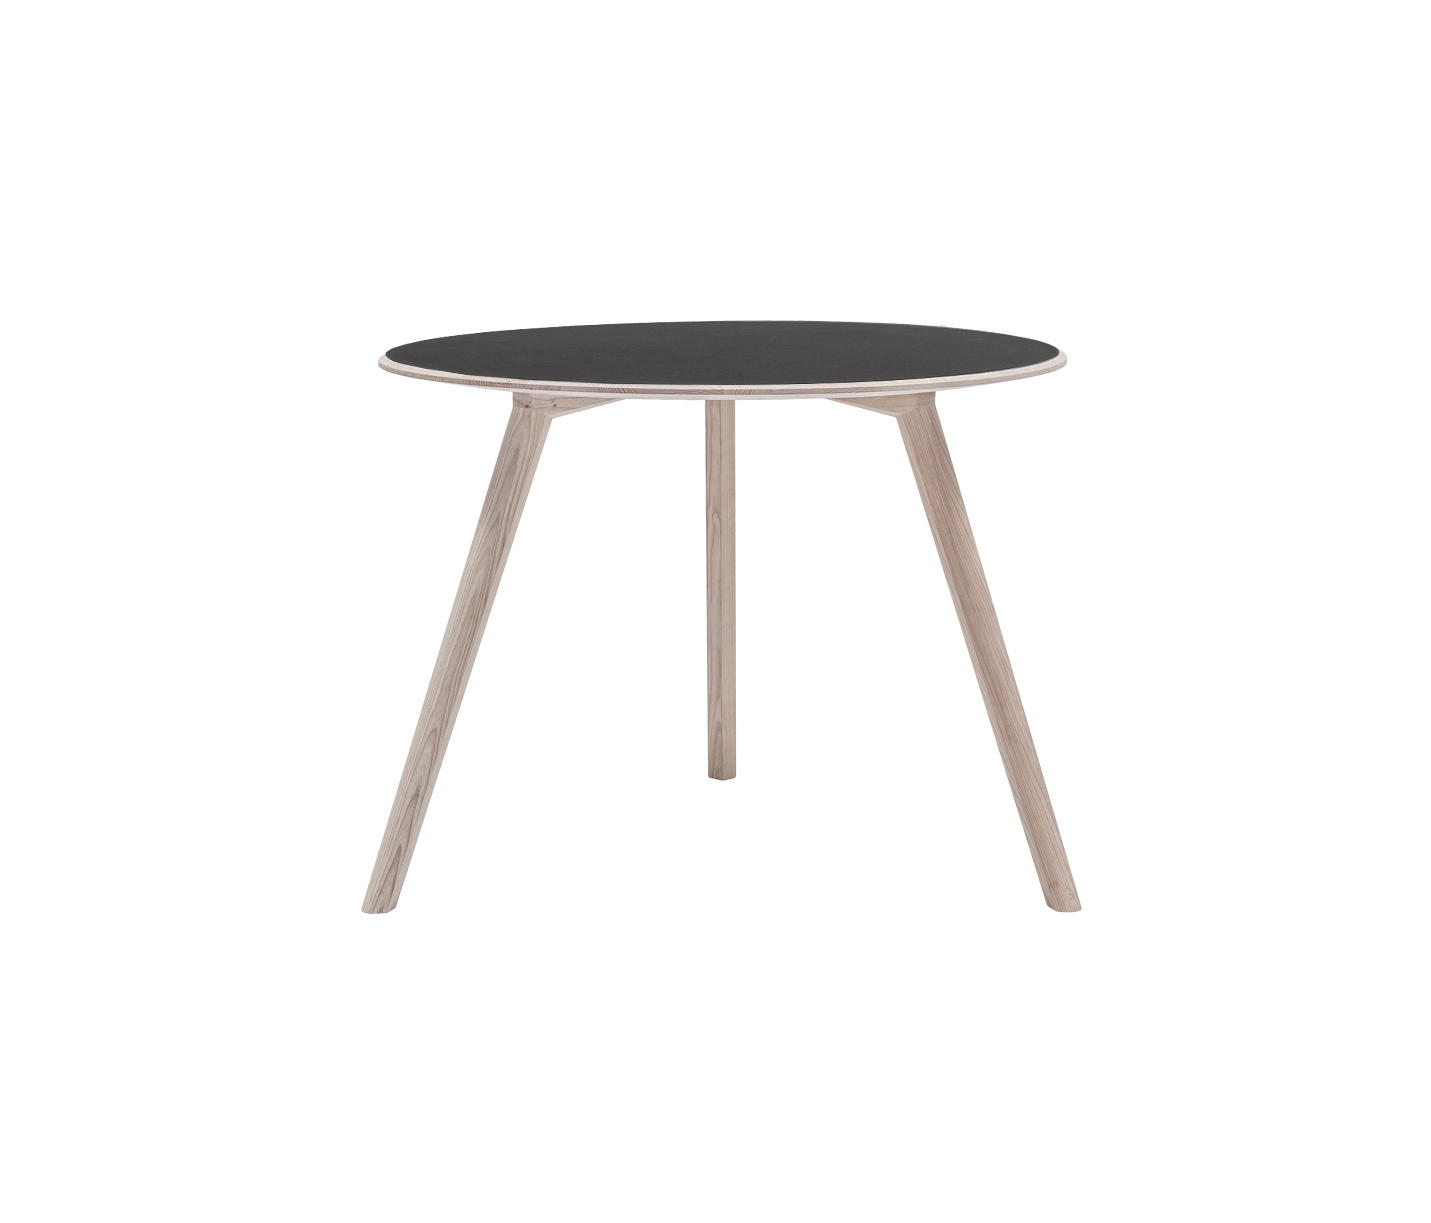 MEYER 92 Dining tables from Objekte unserer Tage Architonic